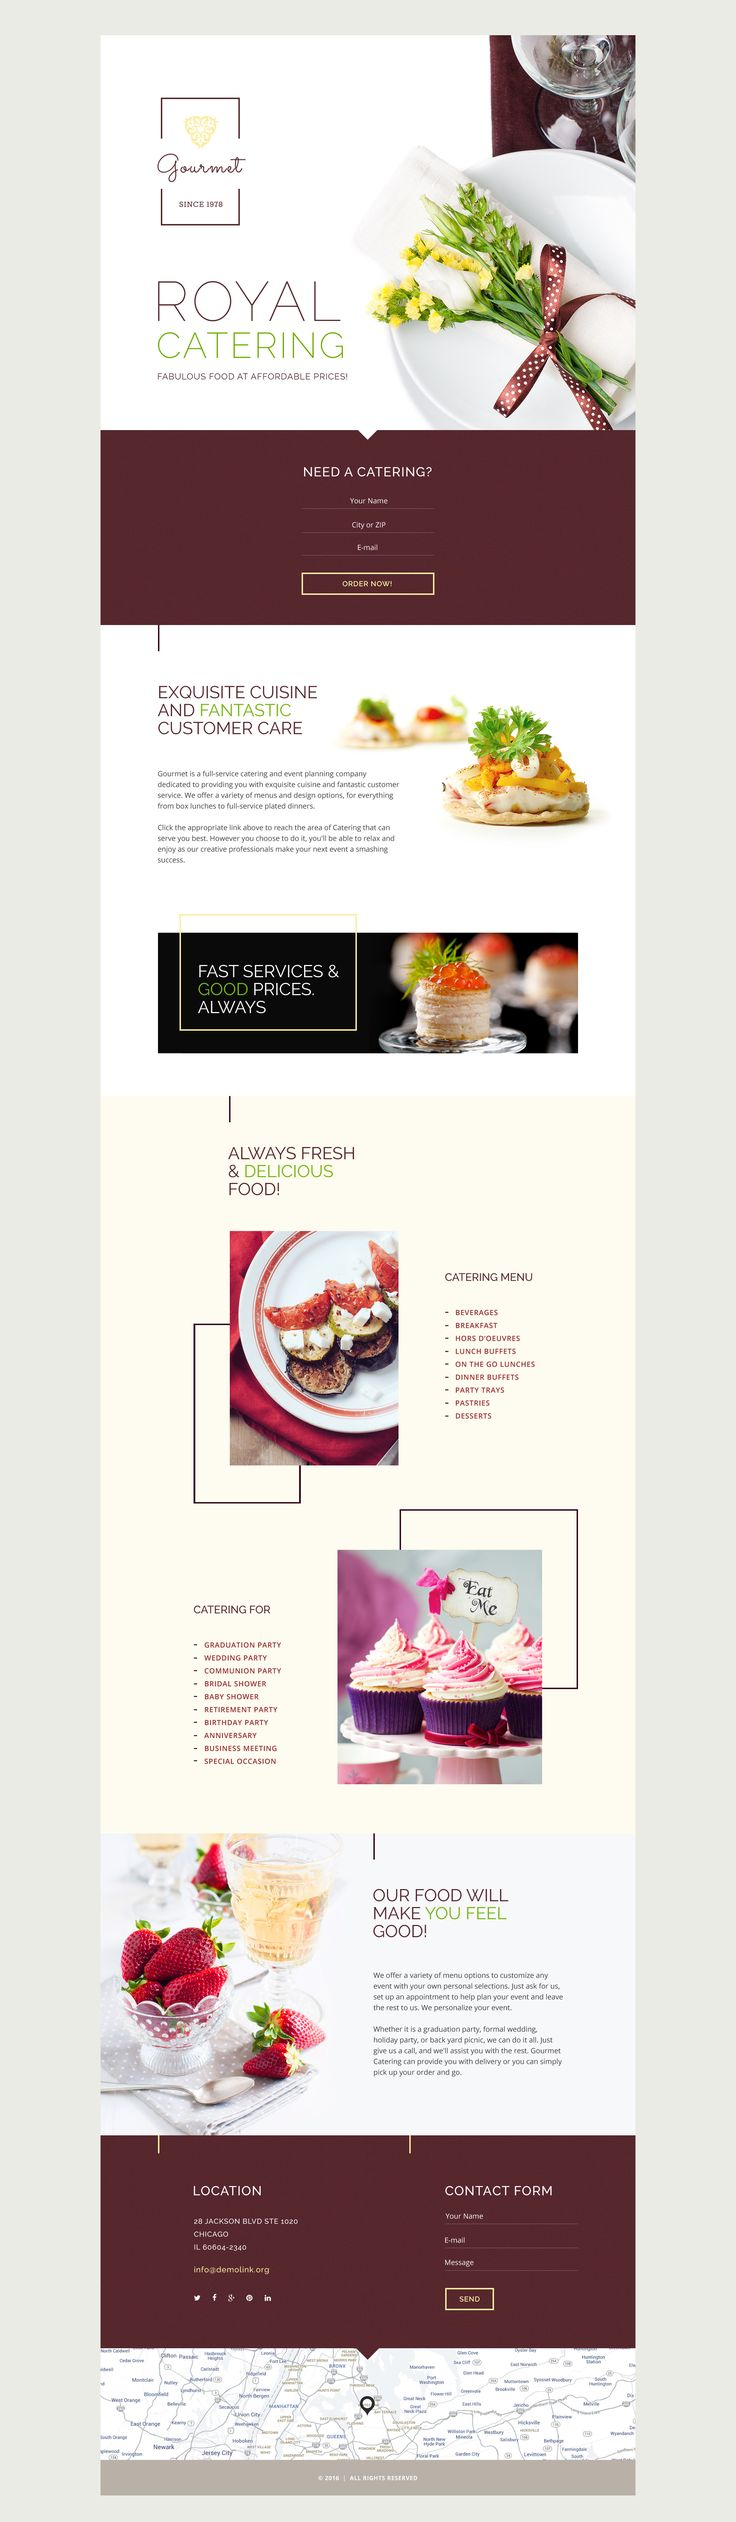 Catering Responsive Landing Page Template #58458 http://www.templatemonster.com/landing-page-template/catering-responsive-landing-page-template-58458.html